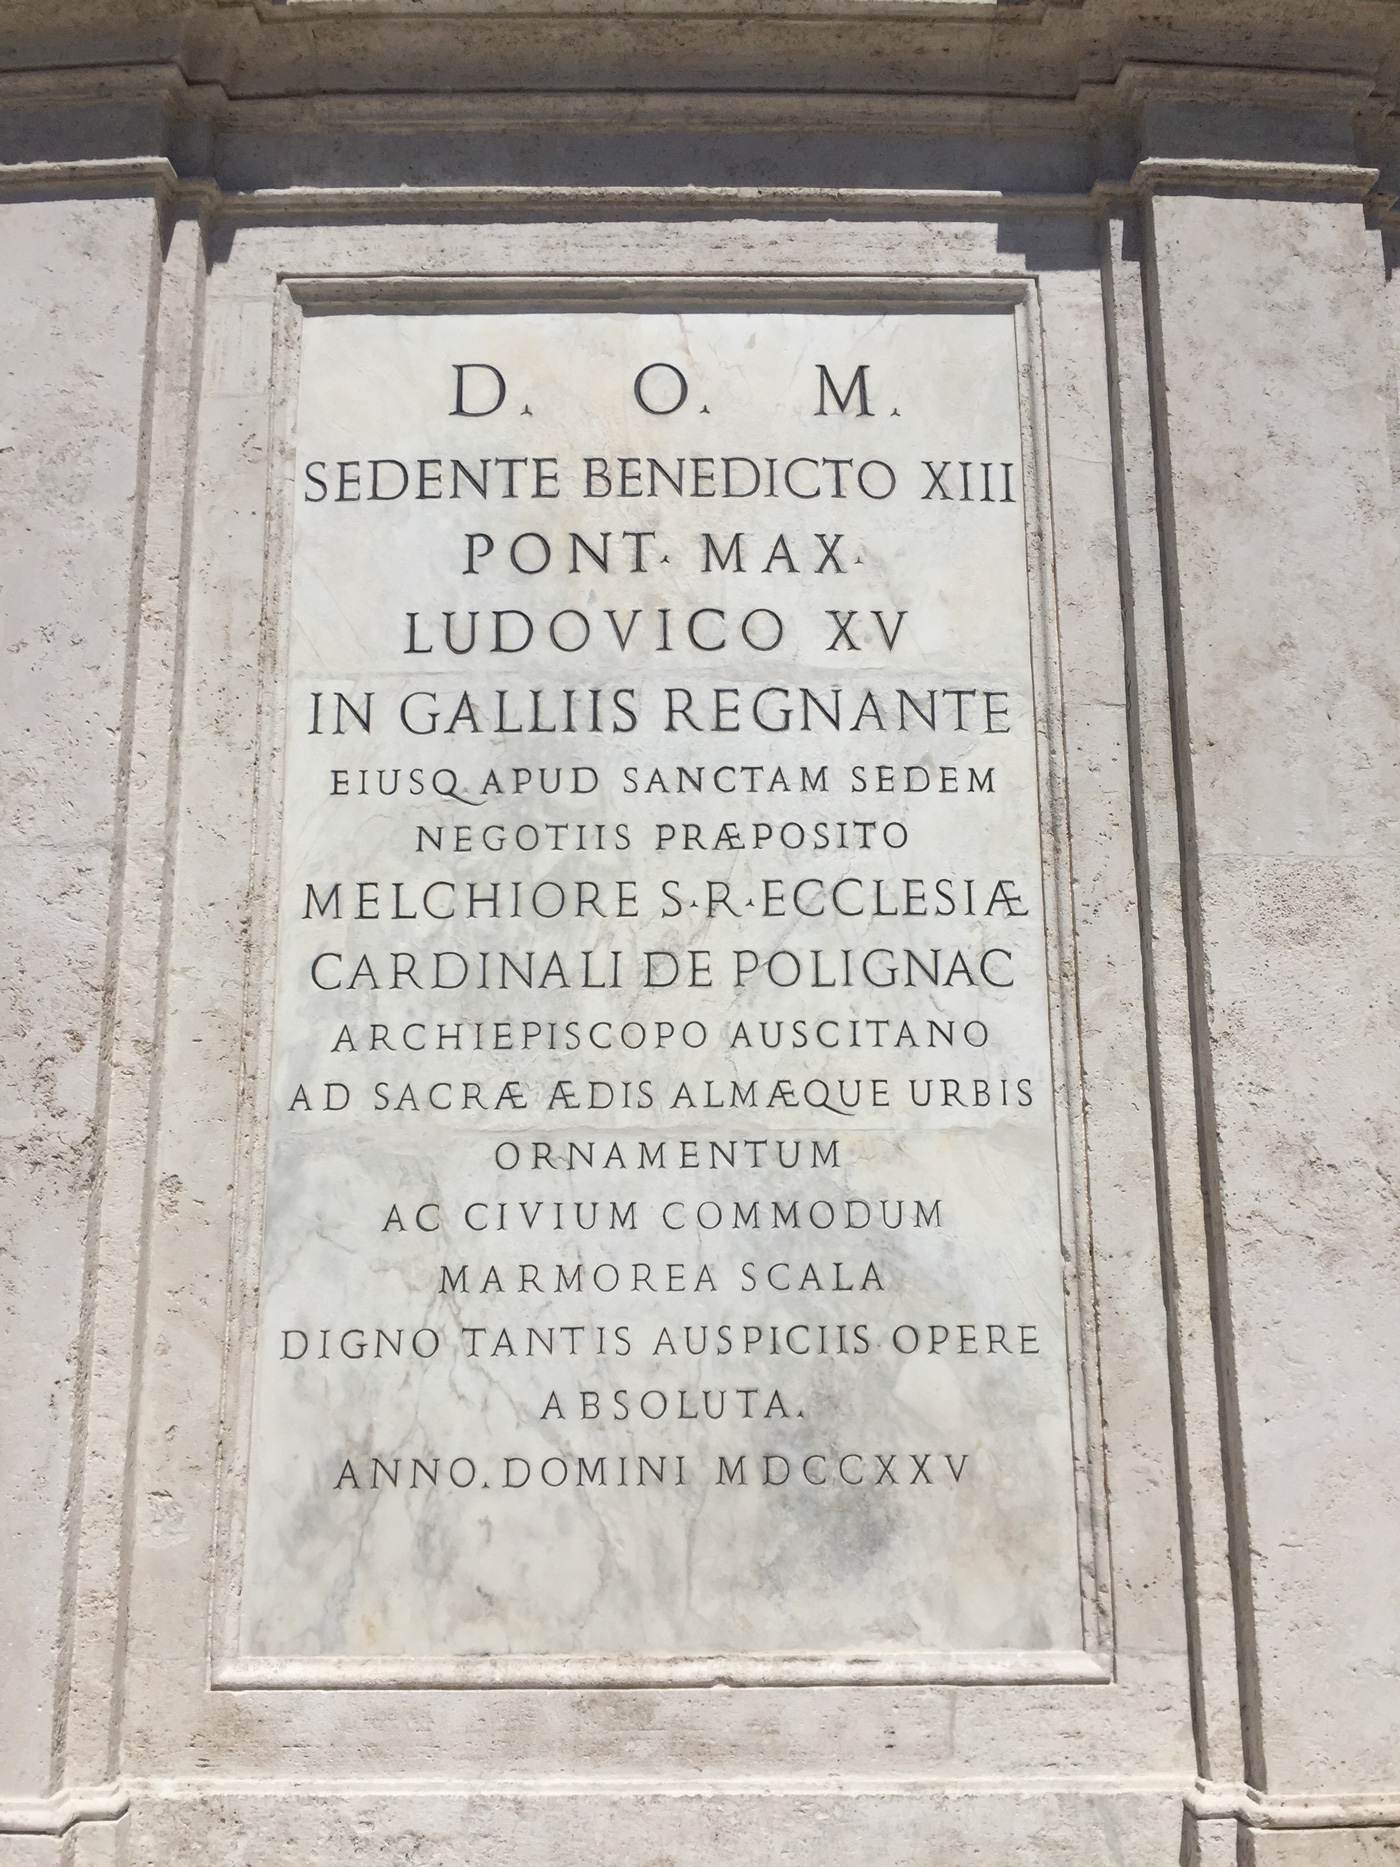 Roman capitals are everywhere especially captioning monuments and buildings like this one at the Piazza Navona I m specially infatuated by the †s